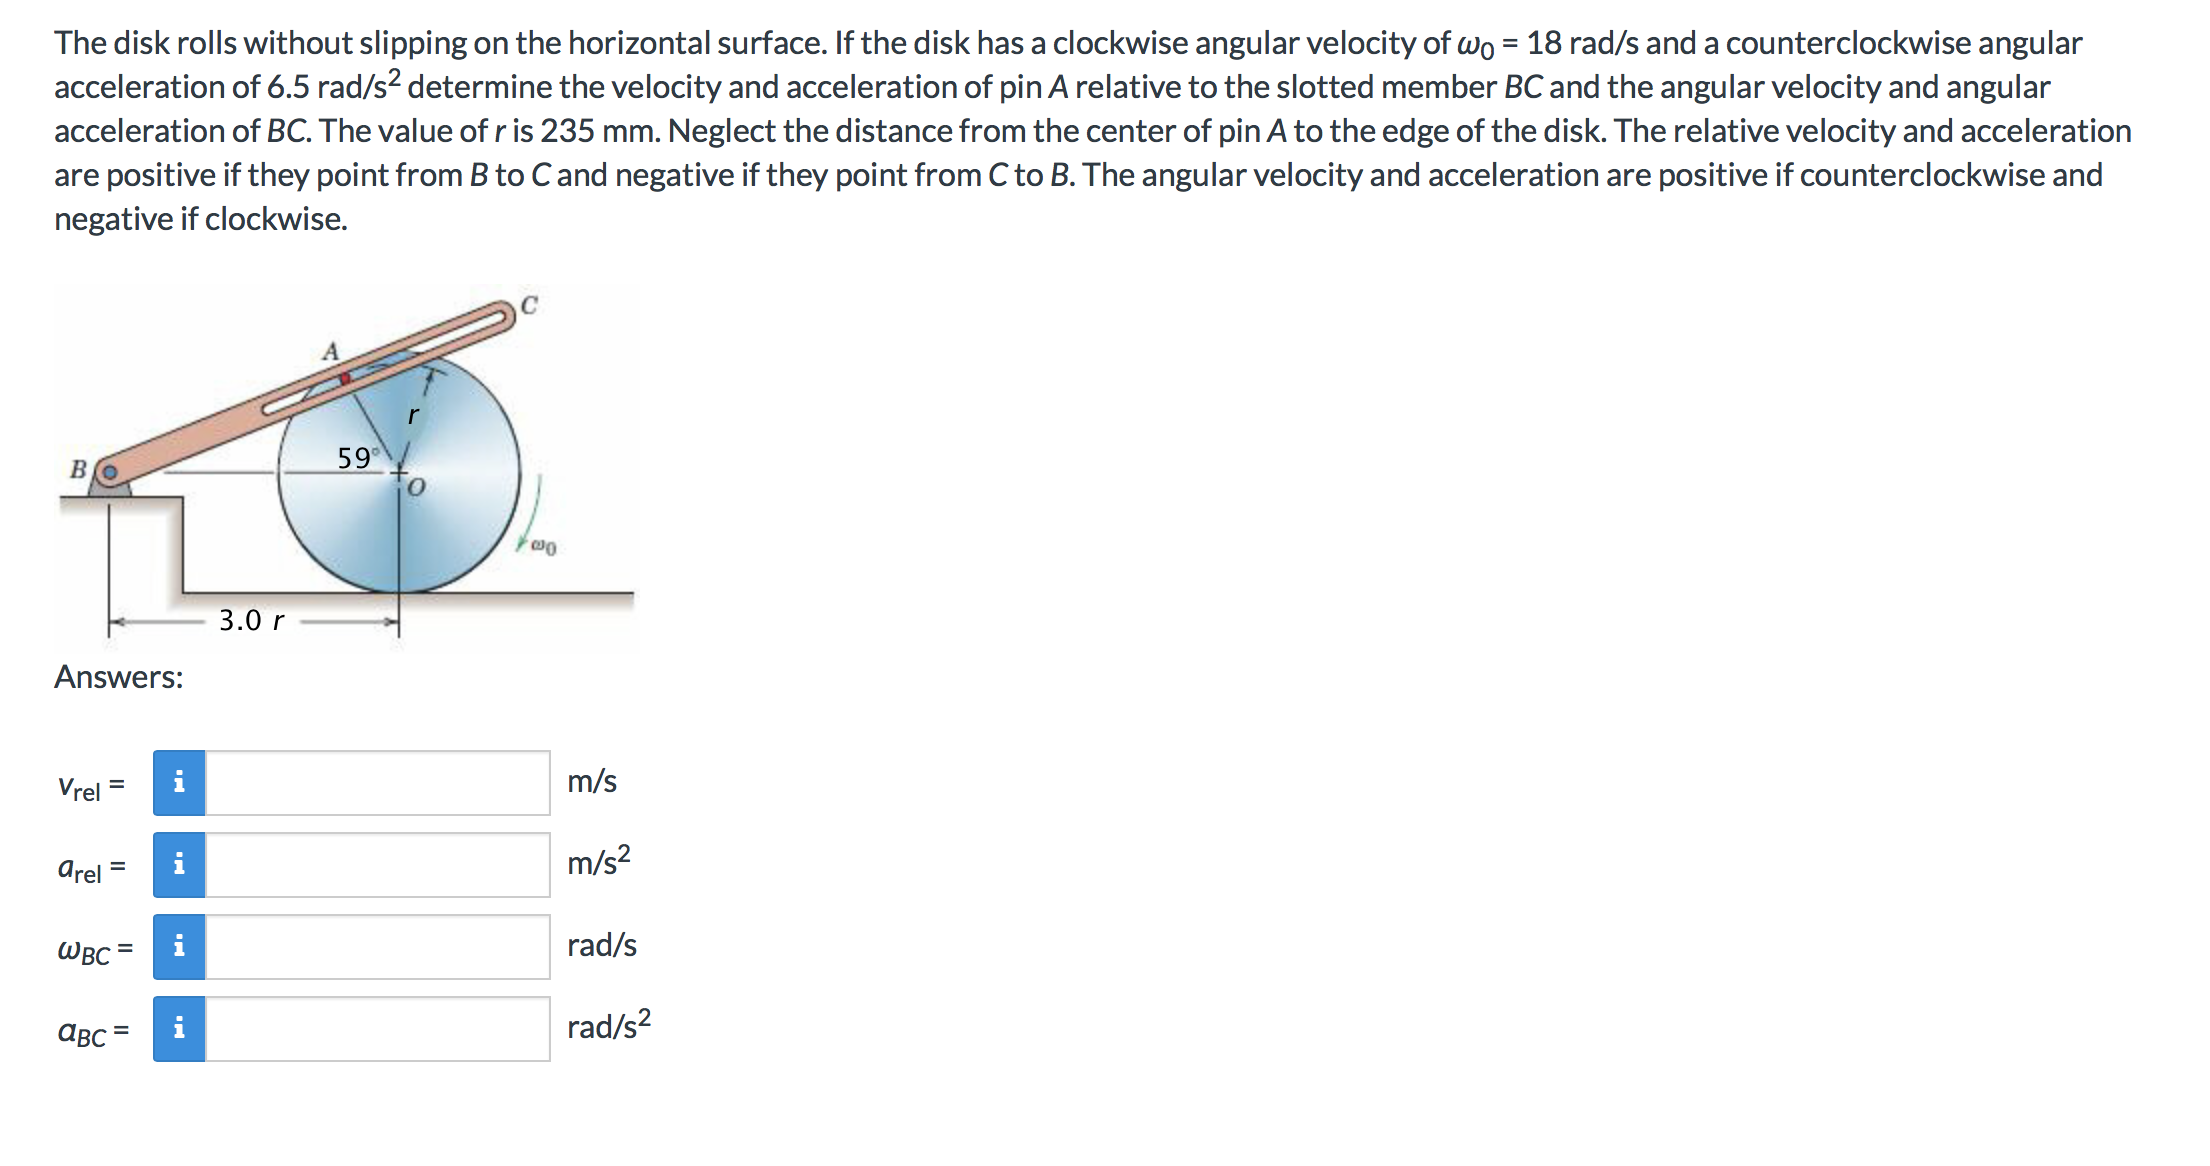 The disk rolls without slipping on the horizontal surface. If the disk has a clockwise angular velocity of wo 18 rad/s and a counterclockwise angular acceleration of 6.5 rad/s2 determine the velocity and acceleration of pin A relative to the slotted member BC and the angular velocity and angular acceleration of BC. The value of r is 235 mm. Neglect the distance from the center of pin A to the edge of the disk. The relative velocity and acceleration are positive if they point from B to Cand negative if they point from C to B. The angular velocity and acceleration are positive if counterclockwise and negative if clockwise. 59 Om 3.0 r Answers: m/s i Vrel m/s2 arel rad/s Швс rad/s2 авс Il